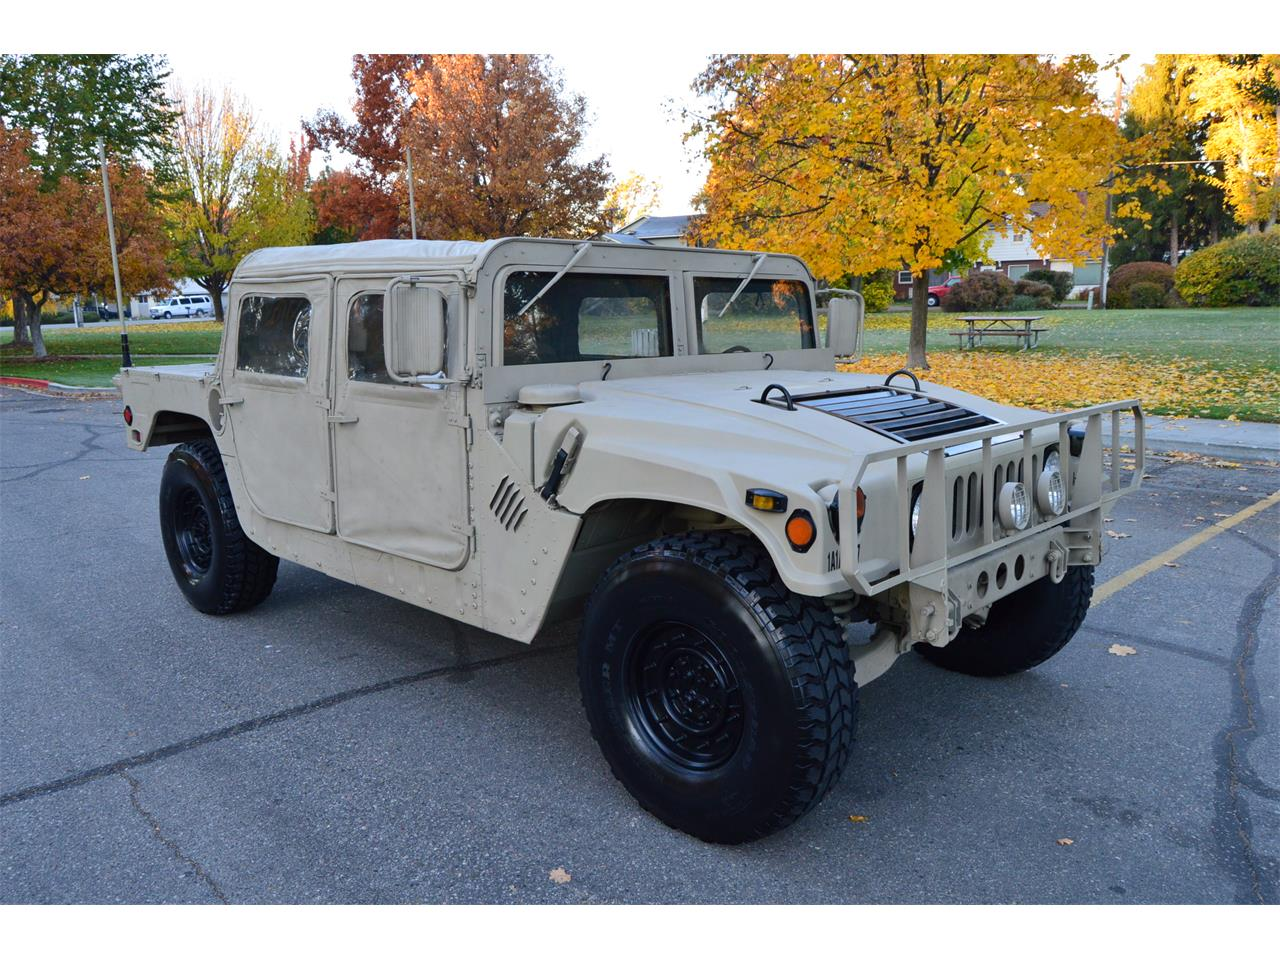 For Sale: 1111 Hummer H11 in Boise, Idaho | military h1 hummer